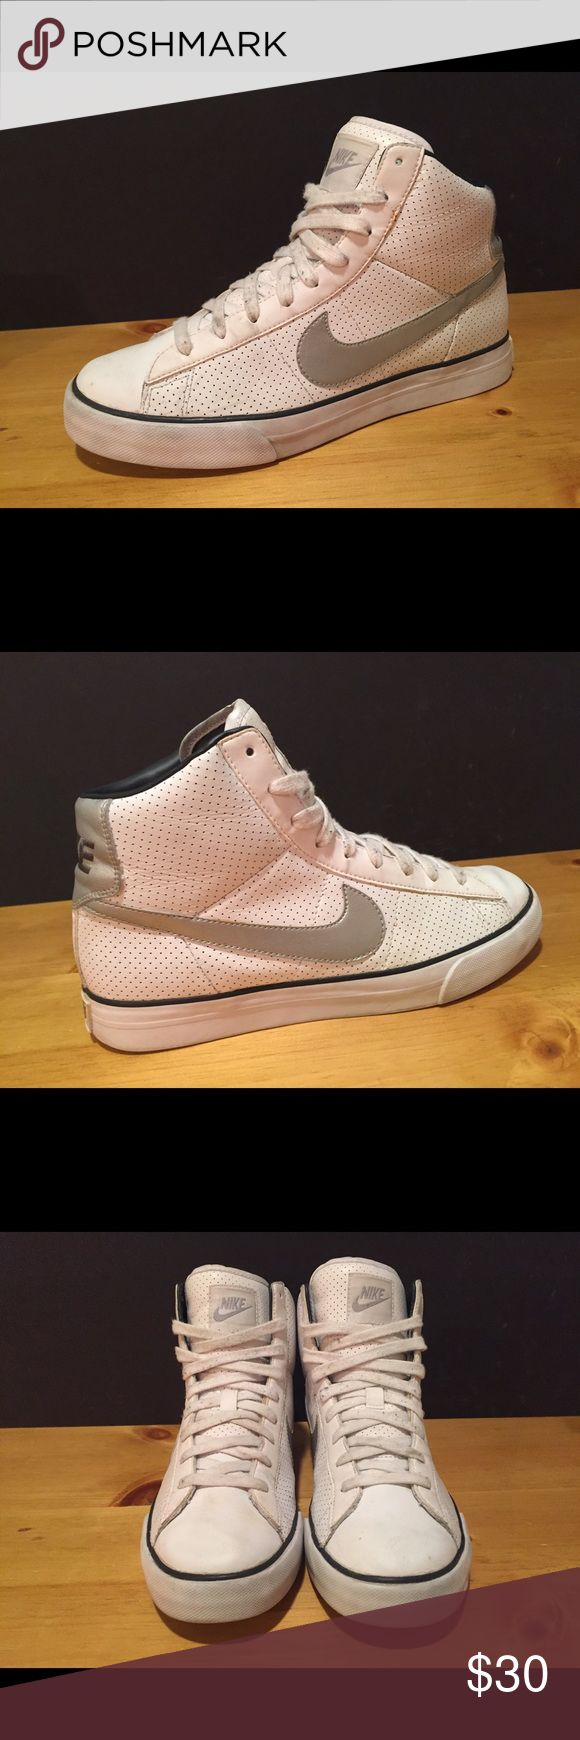 Women's Nike Shoes! Women's Nike Shoes! Size 9.5- White & Gray - pre owned, great condition- see pictures Nike Shoes Sneakers